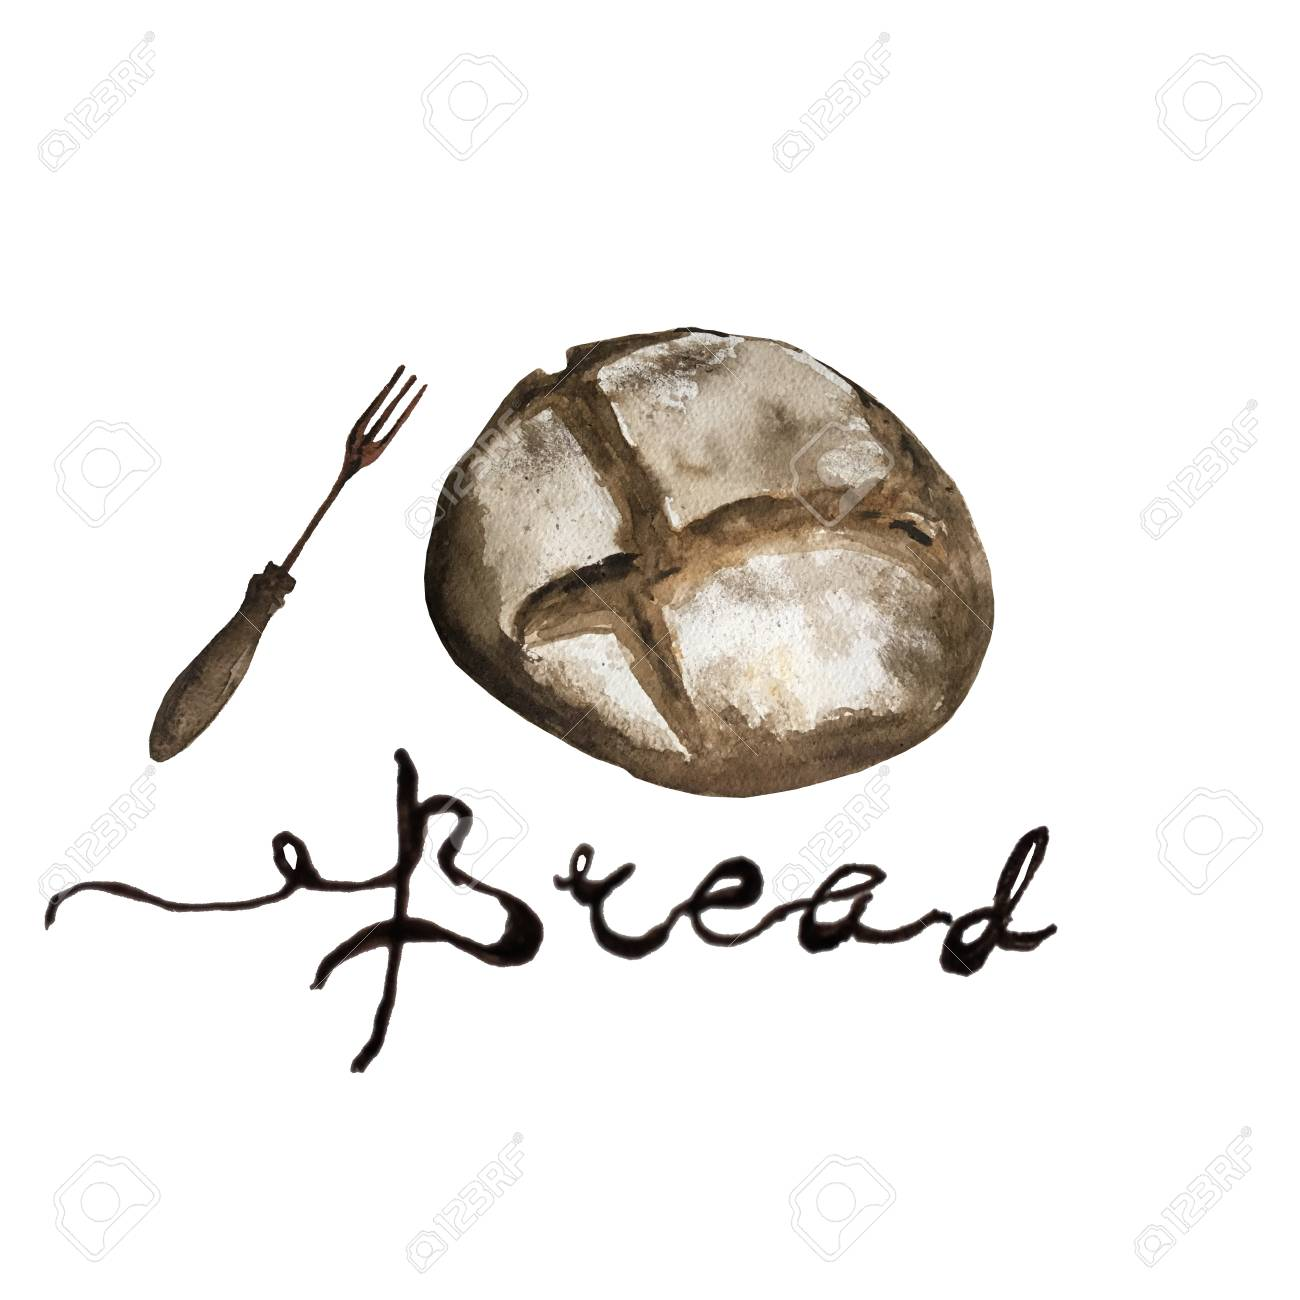 Bread Bakery Product Watercolor Drawing Set Fresh Loaf Of Bread Stock Photo Picture And Royalty Free Image Image 127487558